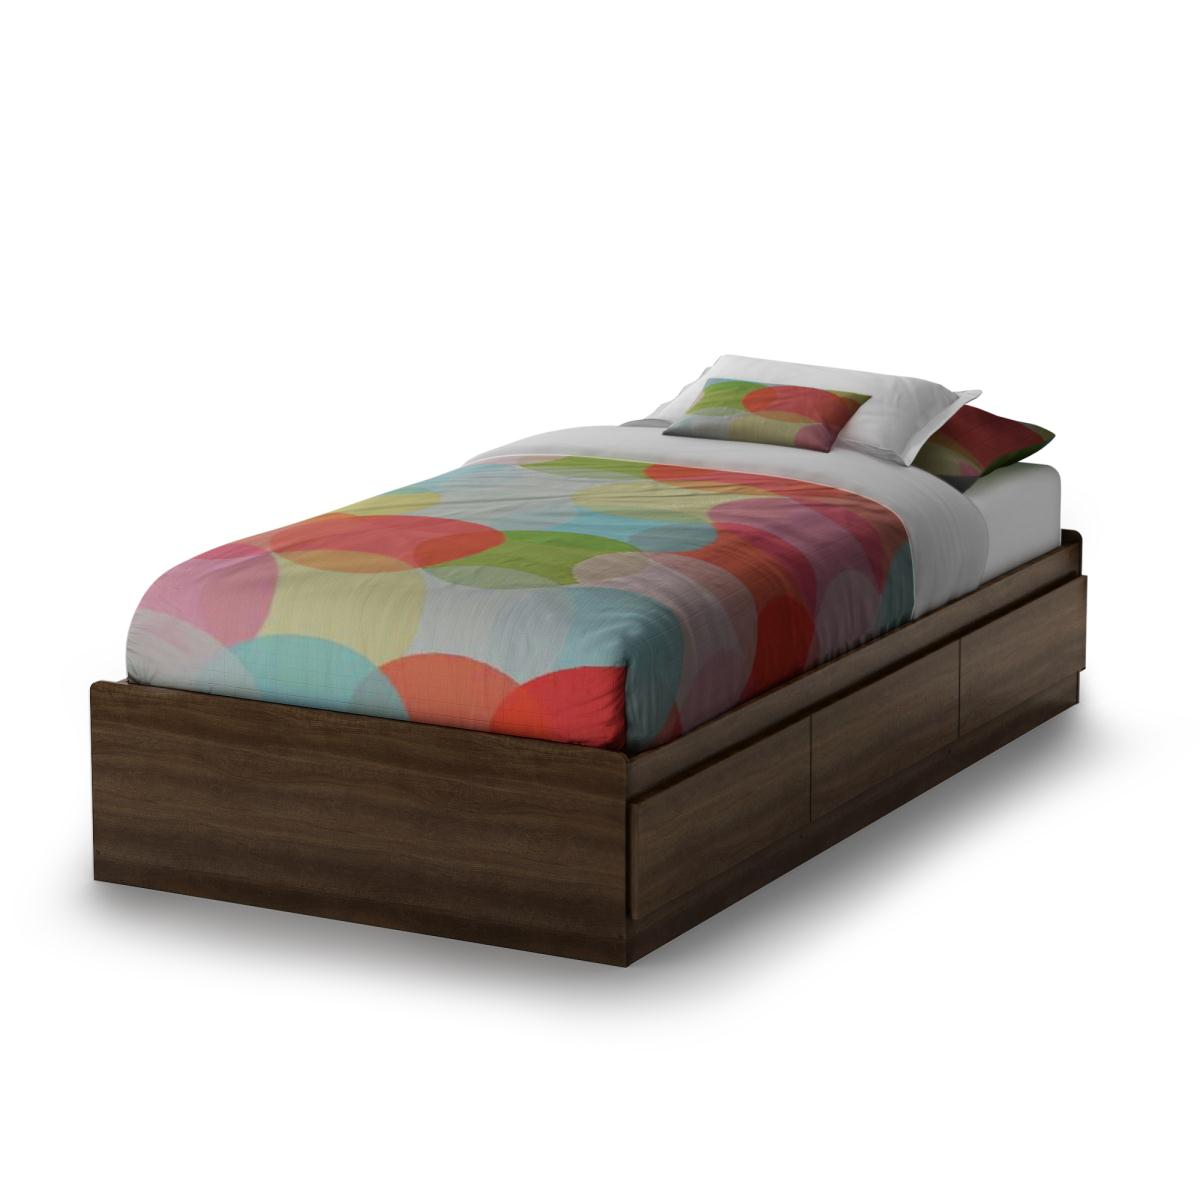 South Shore Popular Twin Mates Bed - Mocha